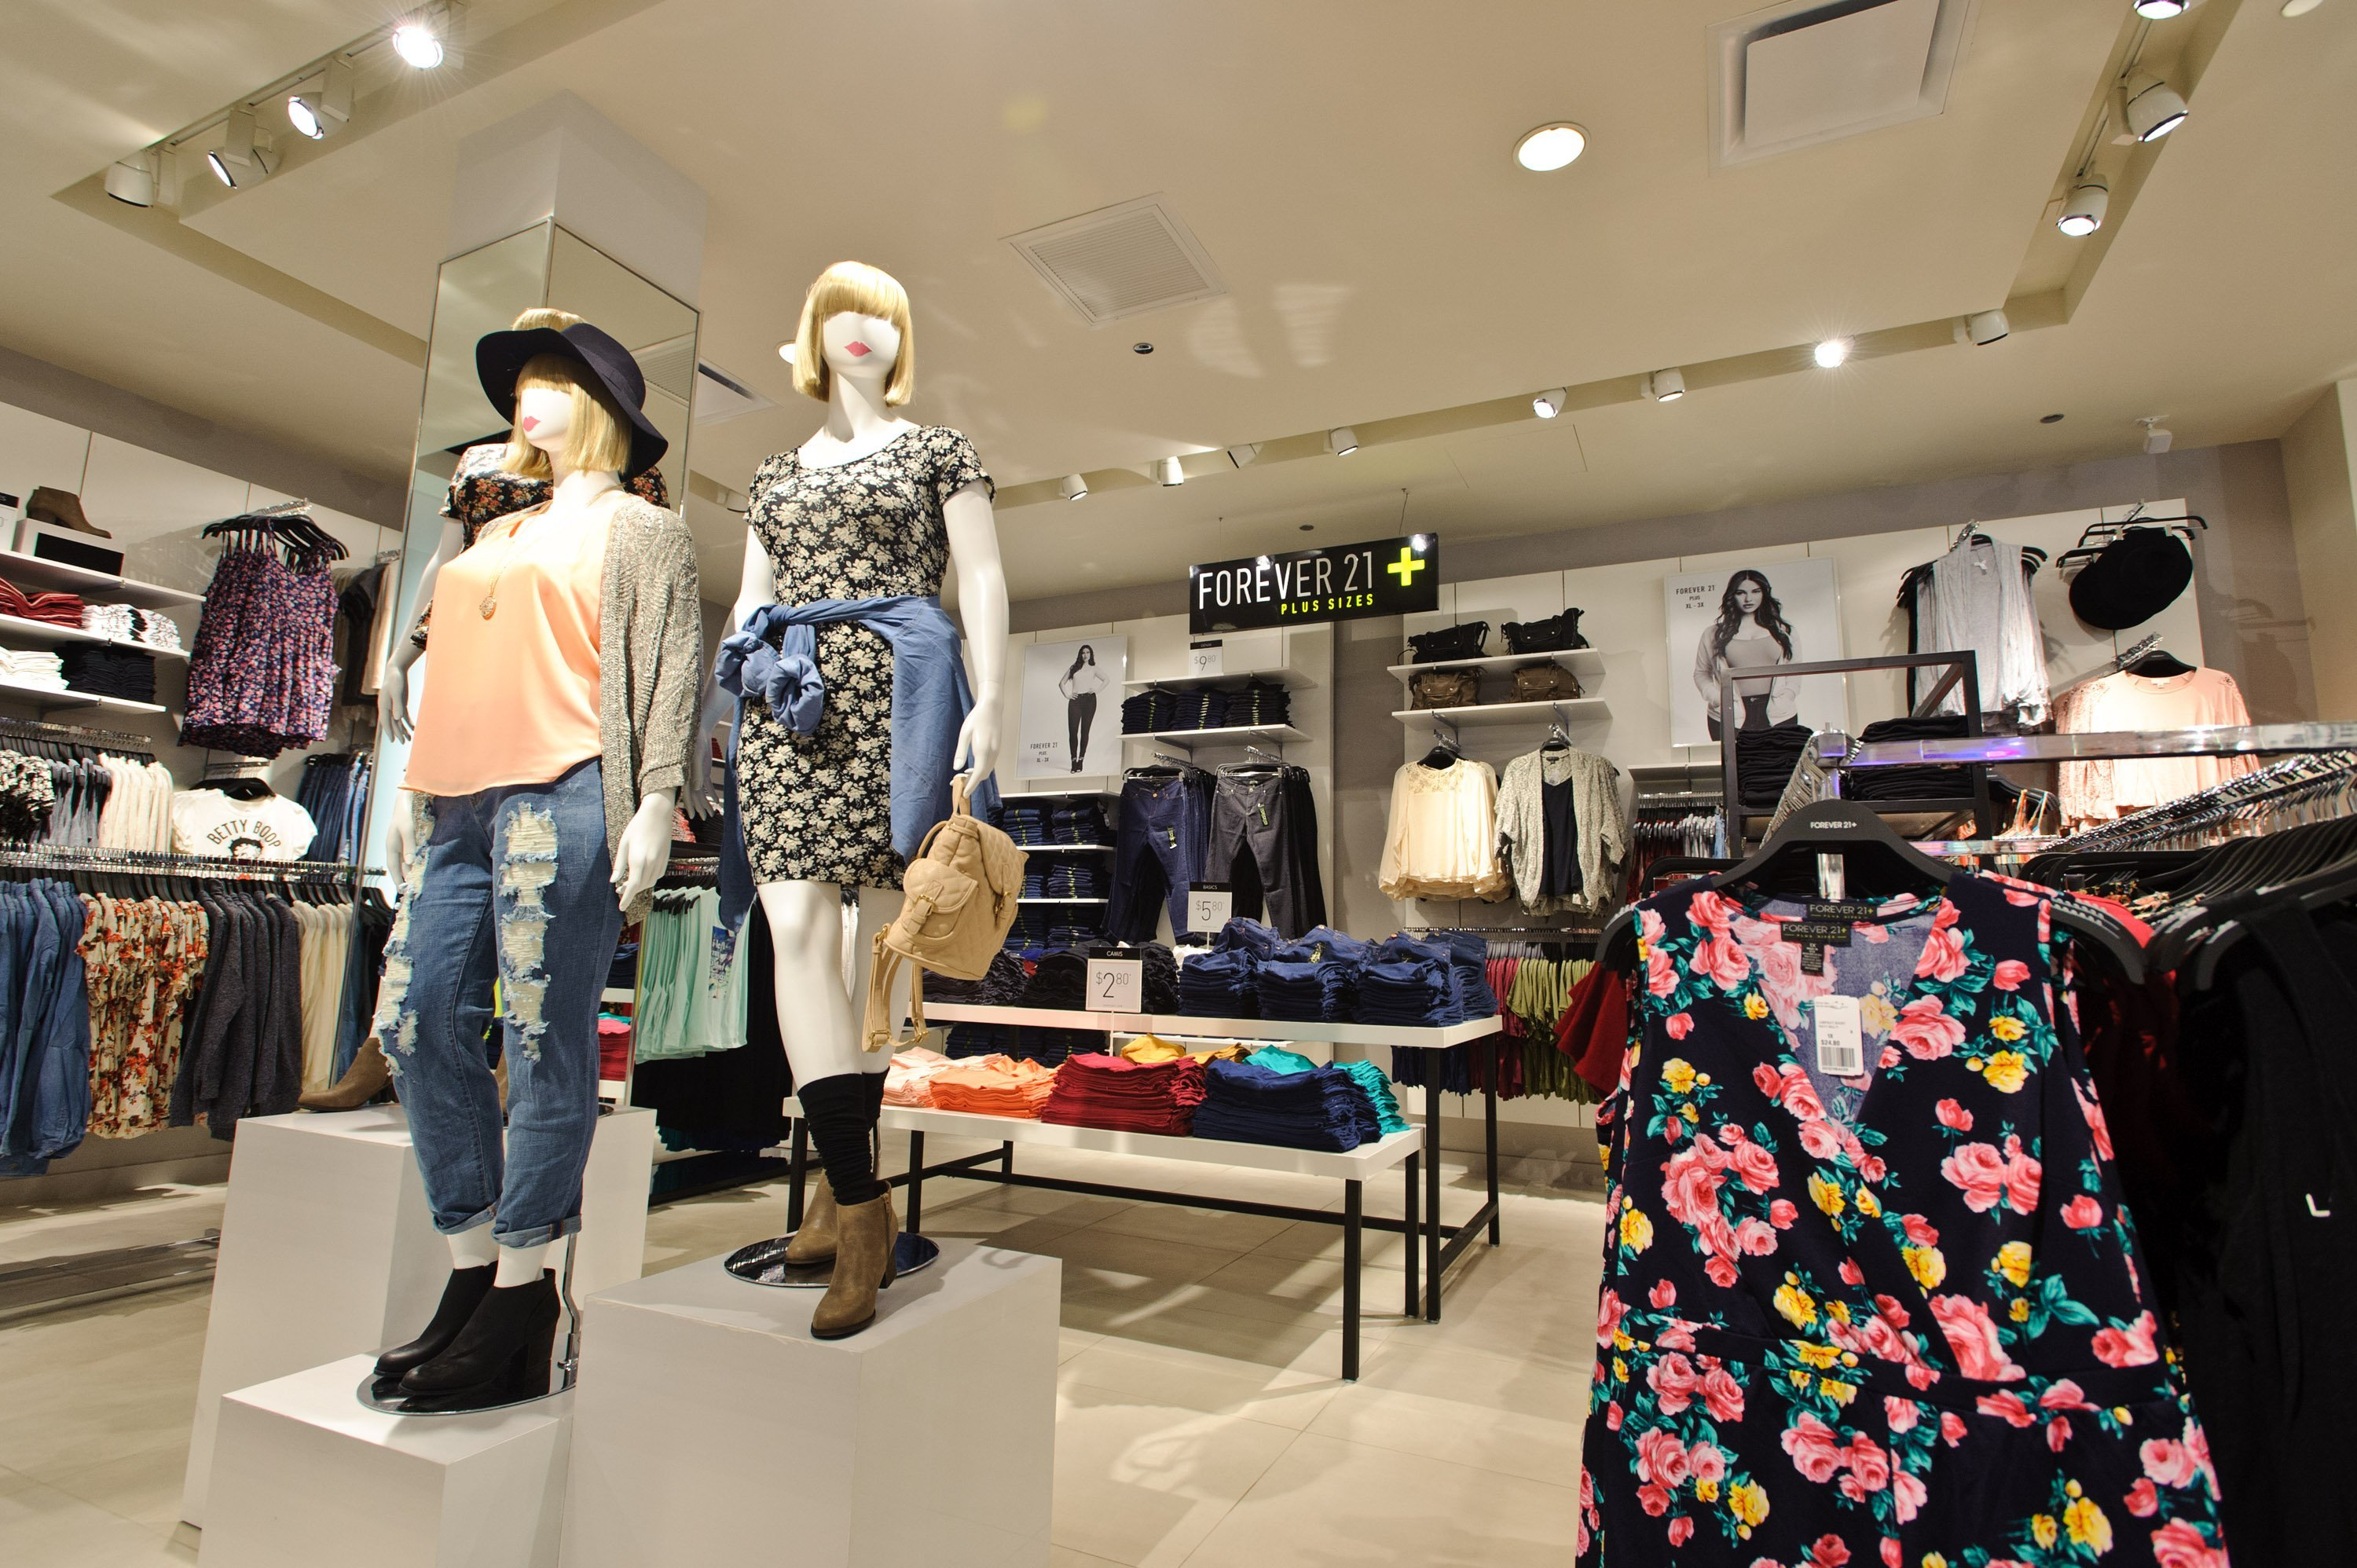 Forever 21 reportedly preparing to file for bankruptcy